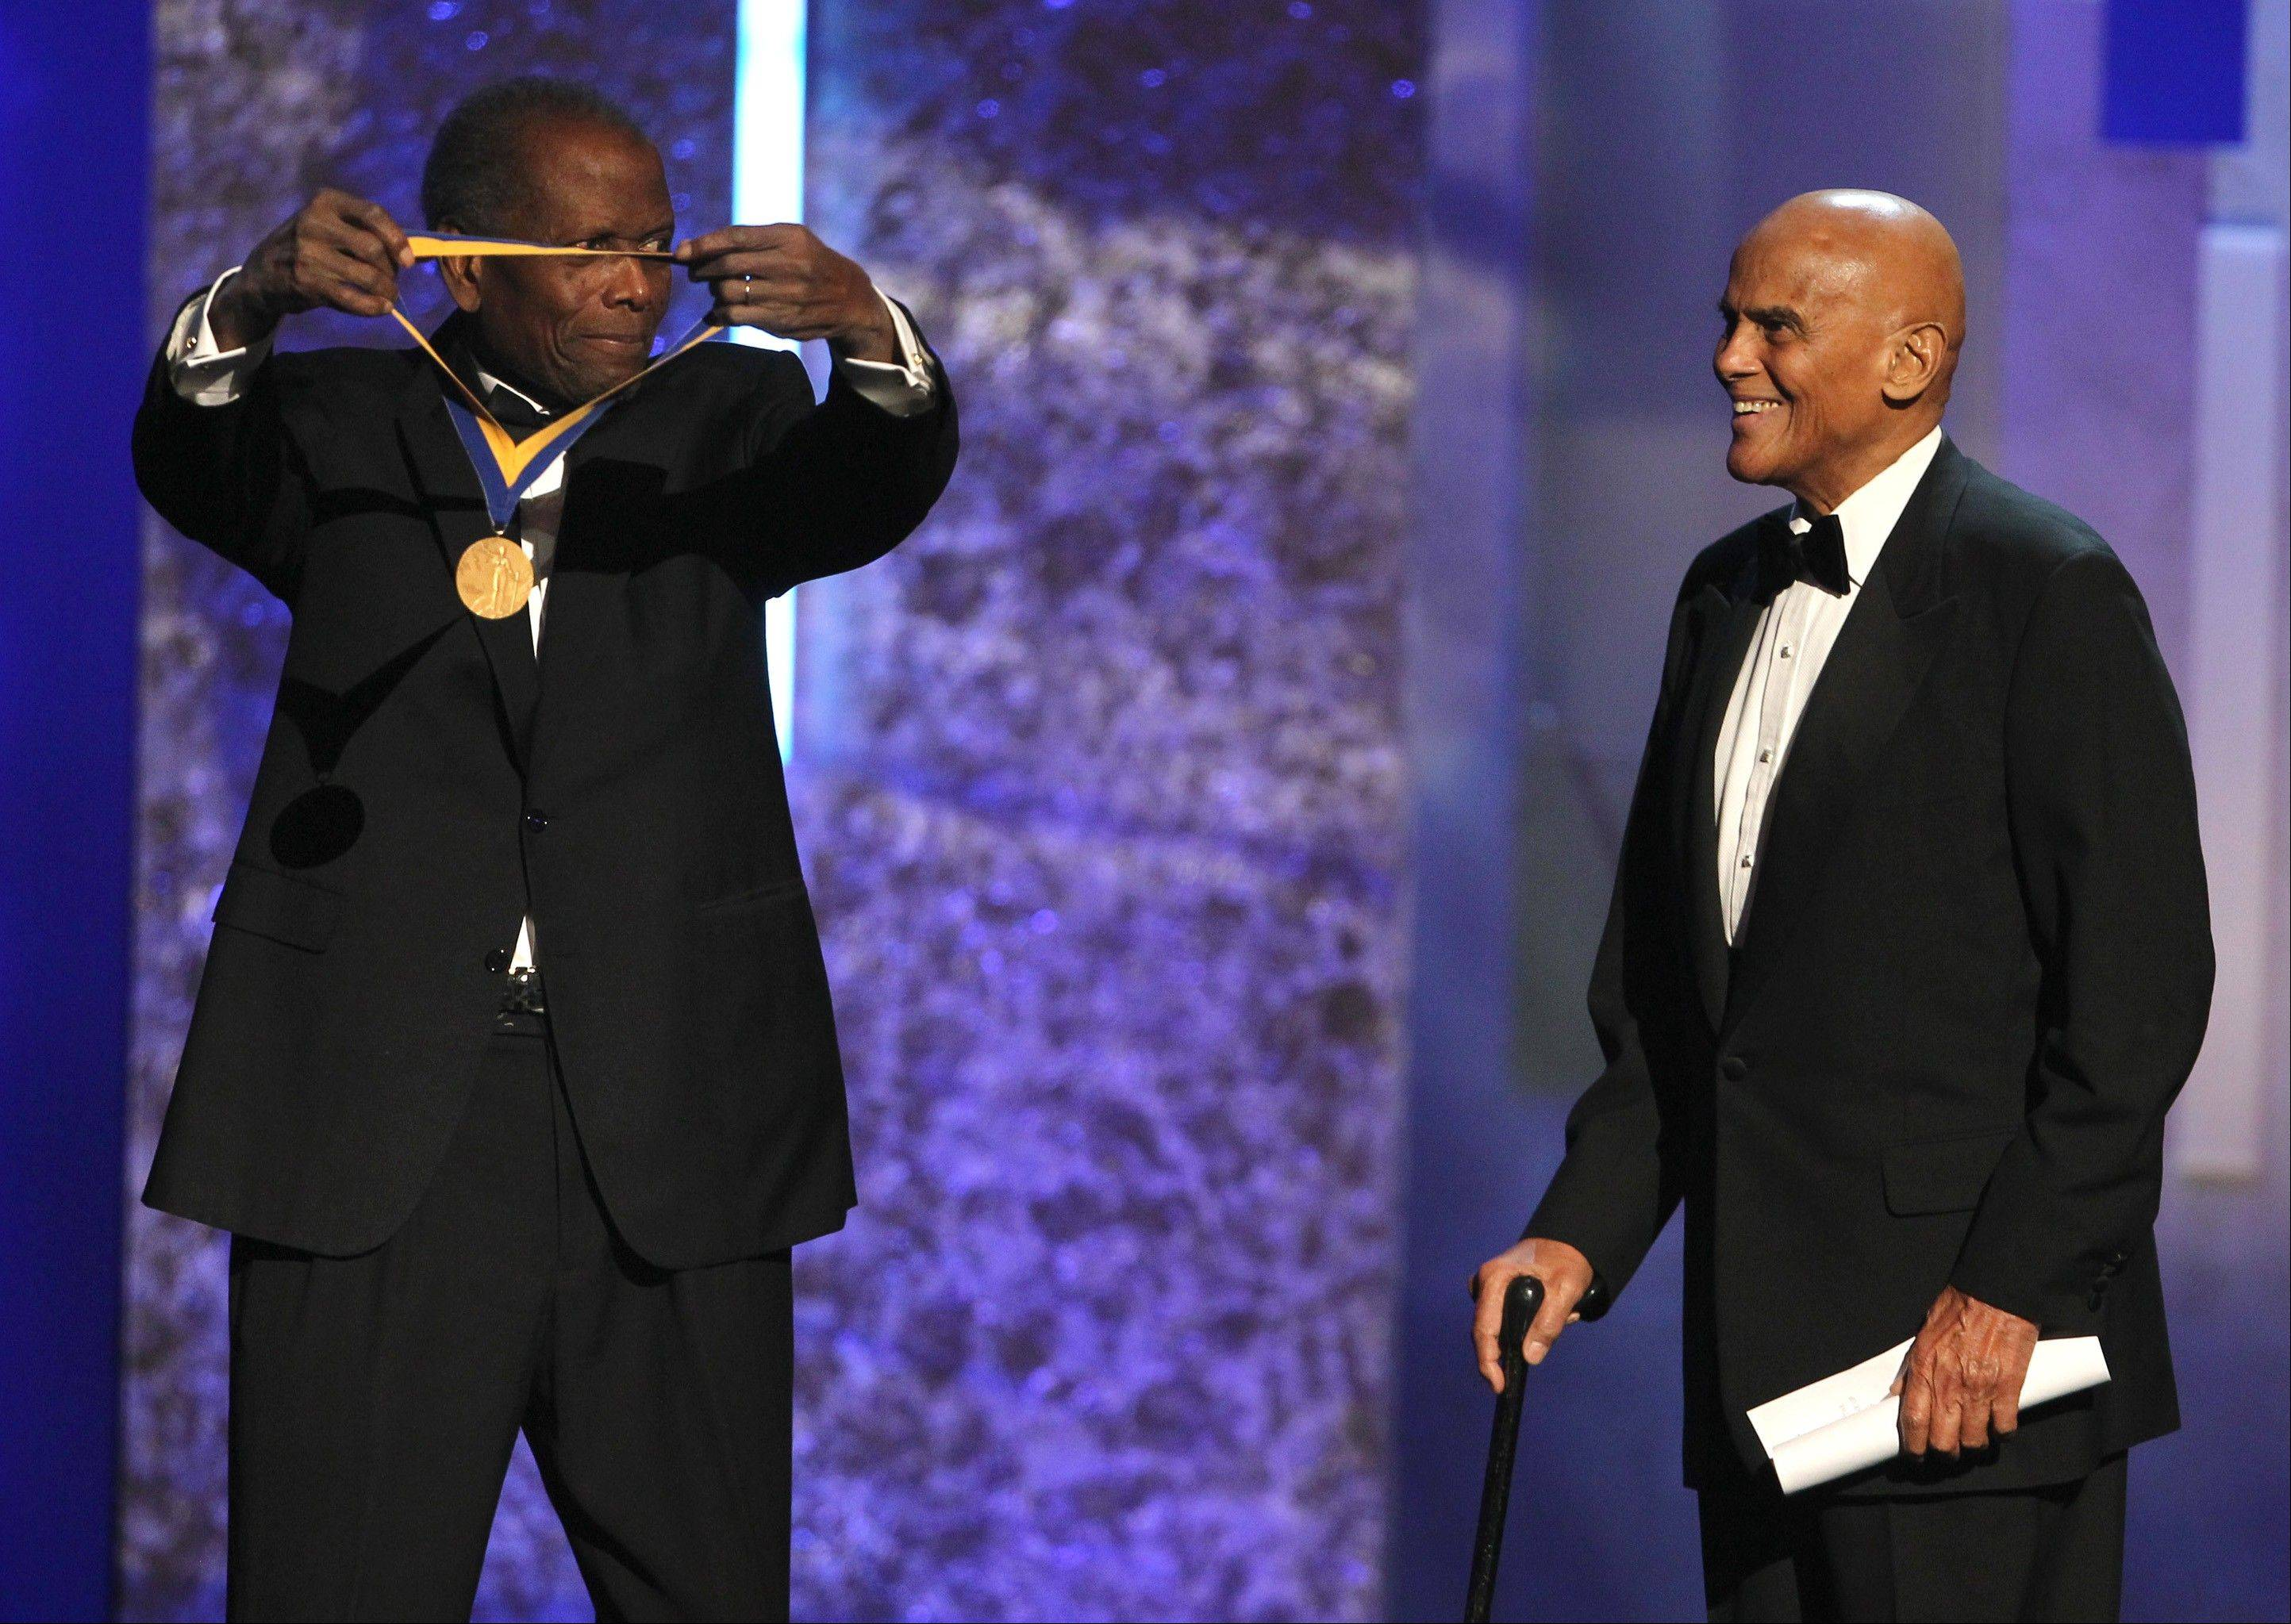 Sidney Poitier, left, presents the Spingarn award to Harry Belafonte at the 44th Annual NAACP Image Awards at the Shrine Auditorium in Los Angeles on Friday, Feb. 1, 2013.